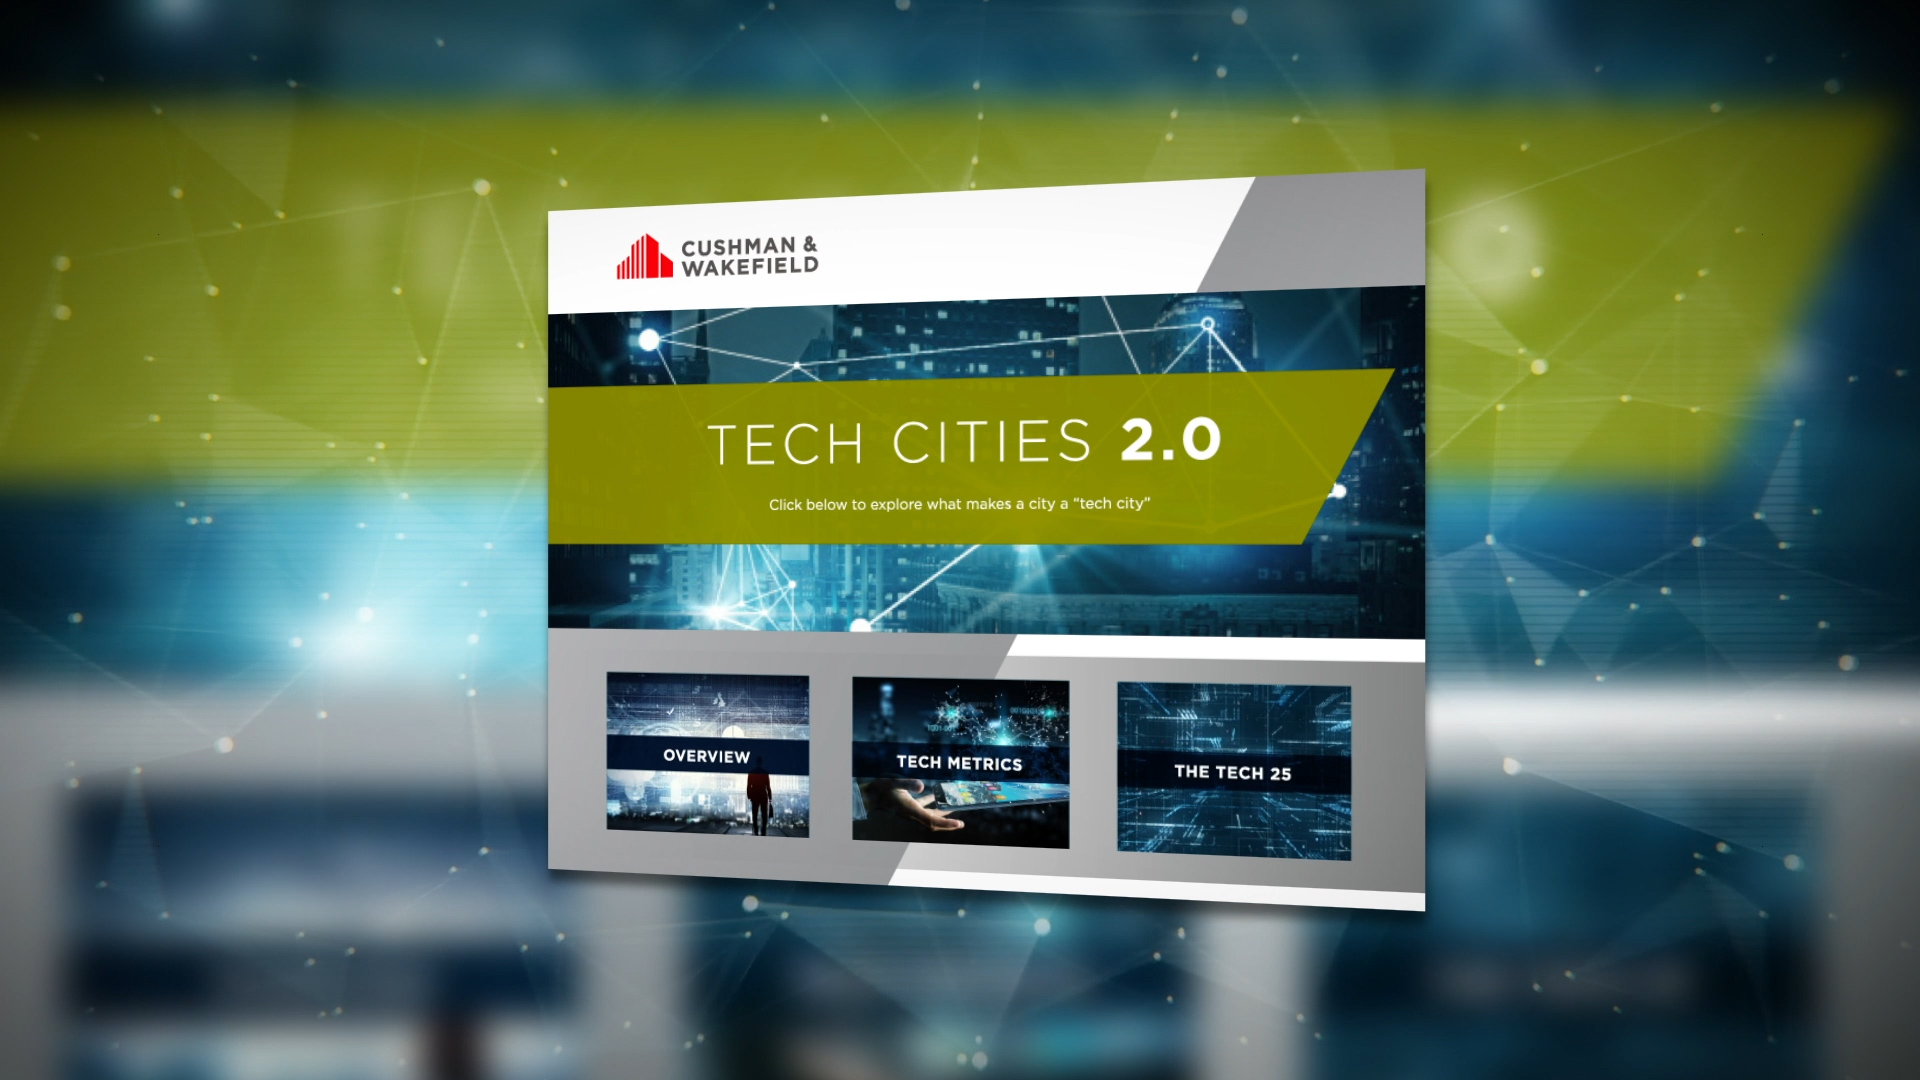 Tech Cities 2.0: Washington DC